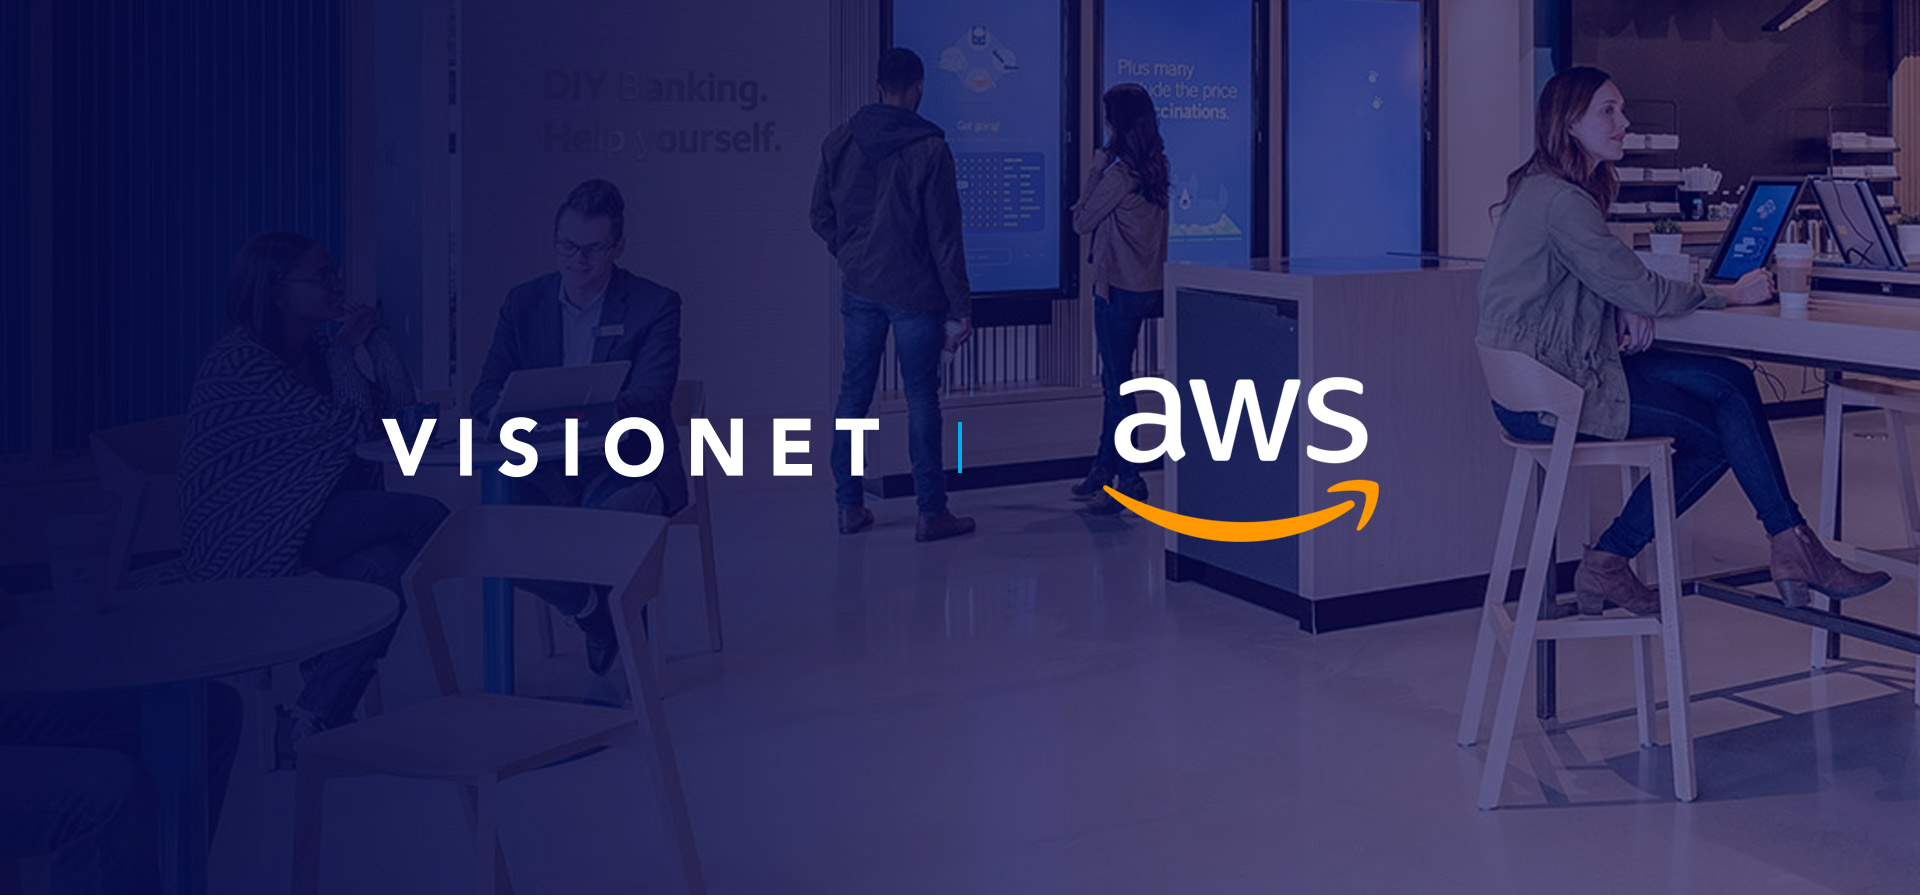 Visionet Systems among the first Amazon Web Services